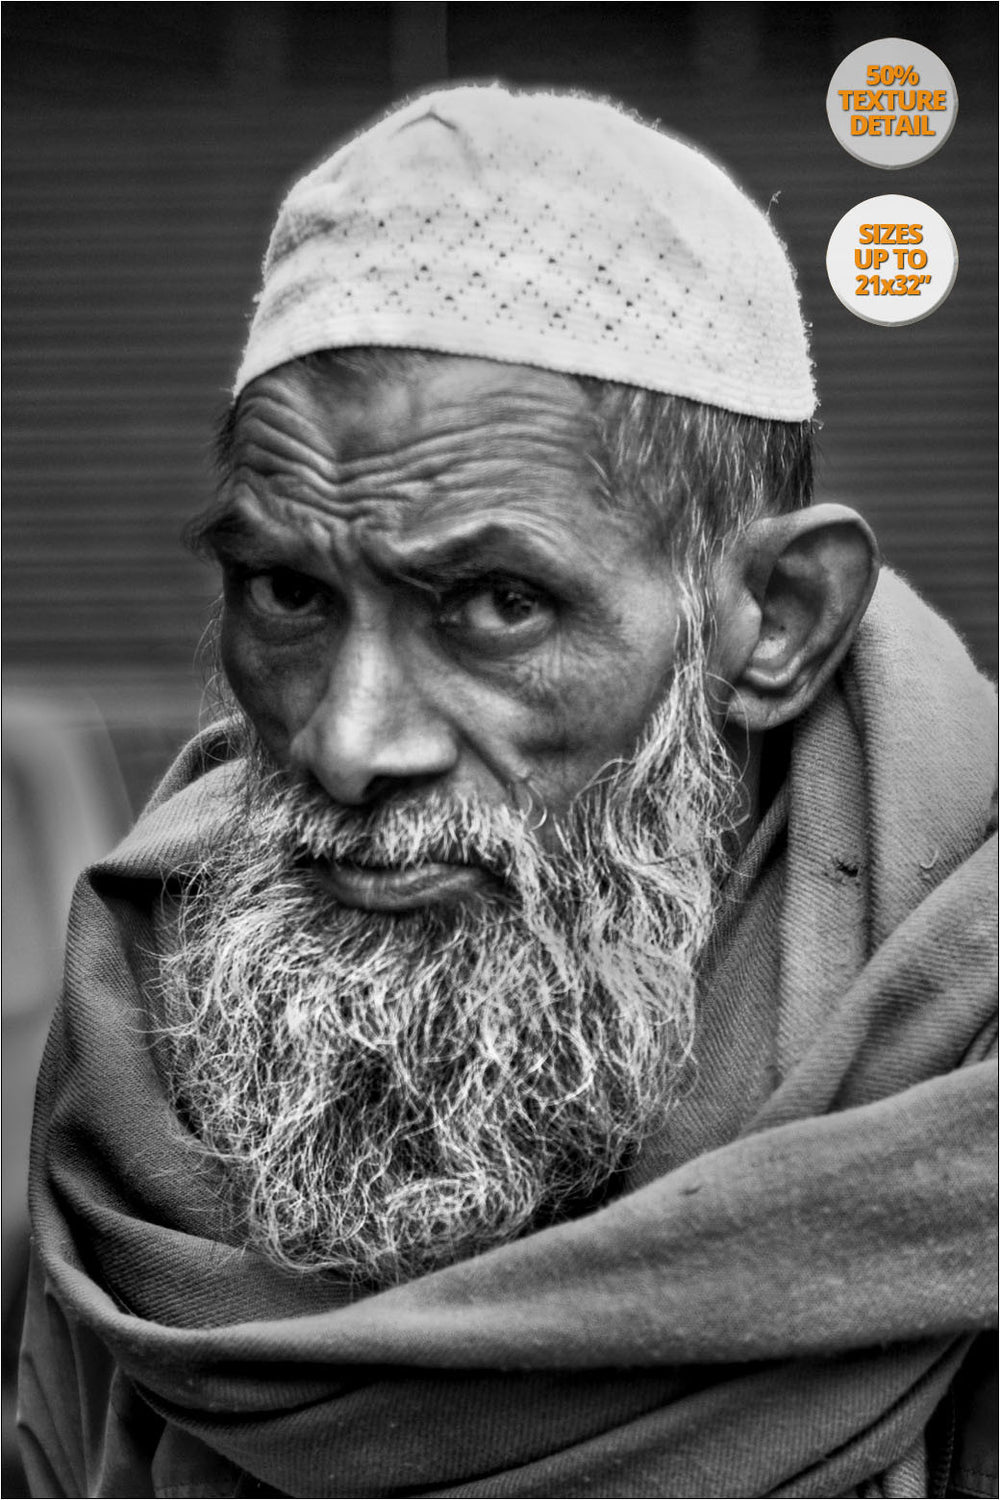 Elderly man, Main Bazaar, New Delhi, India.